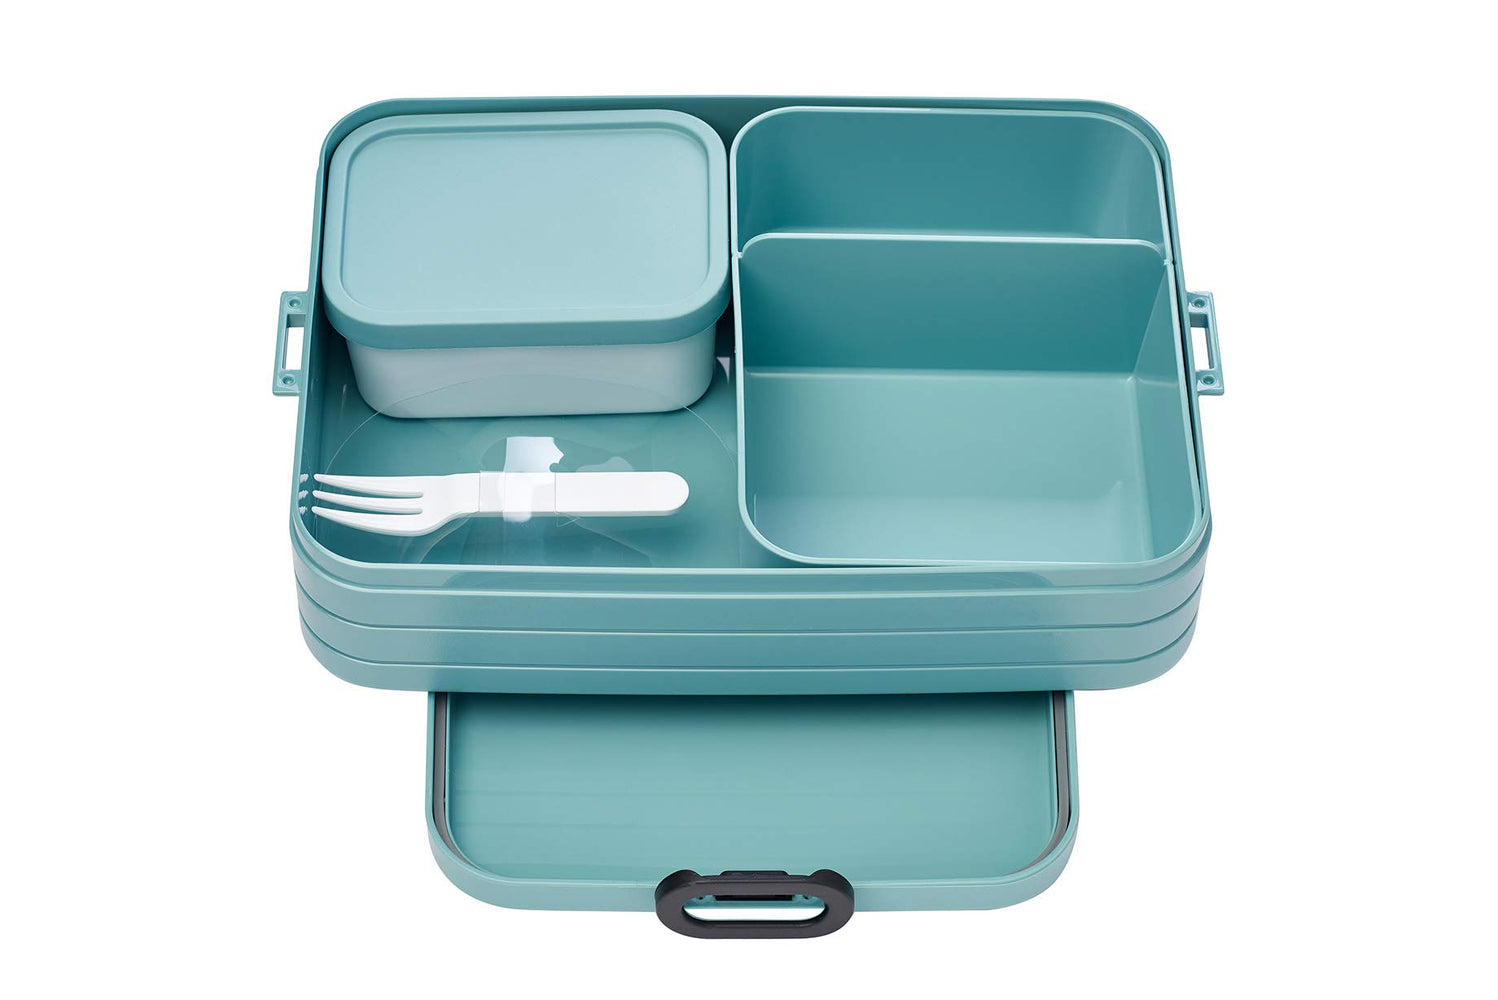 BENTO Lunch Box Large 25.5x17cm/10x7 Nordic-Green